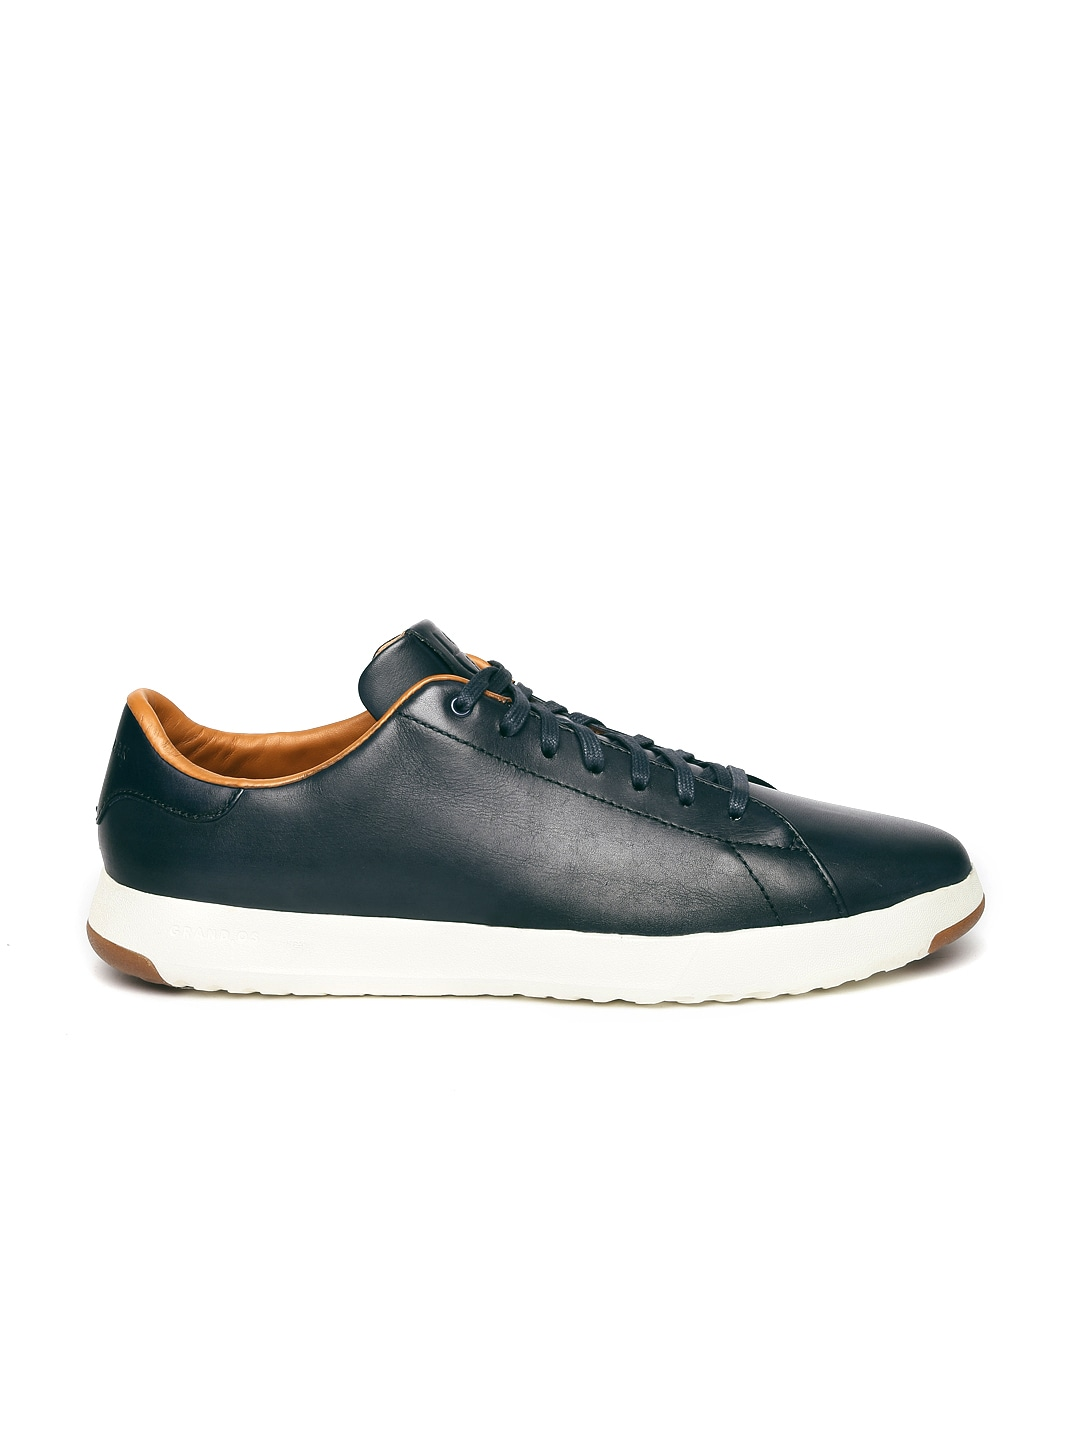 260f393bc6e Buy JOHNSTON   MURPHY Men Navy Suede Perforated Casual Shoes ...